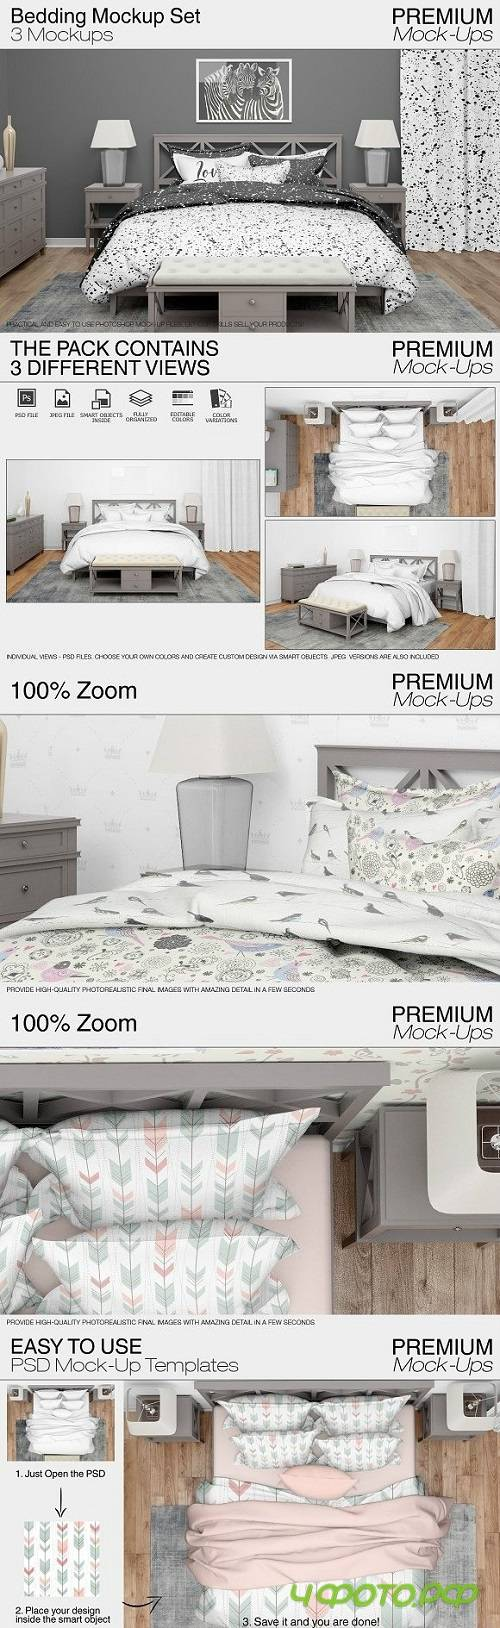 Beddings Set 1844851